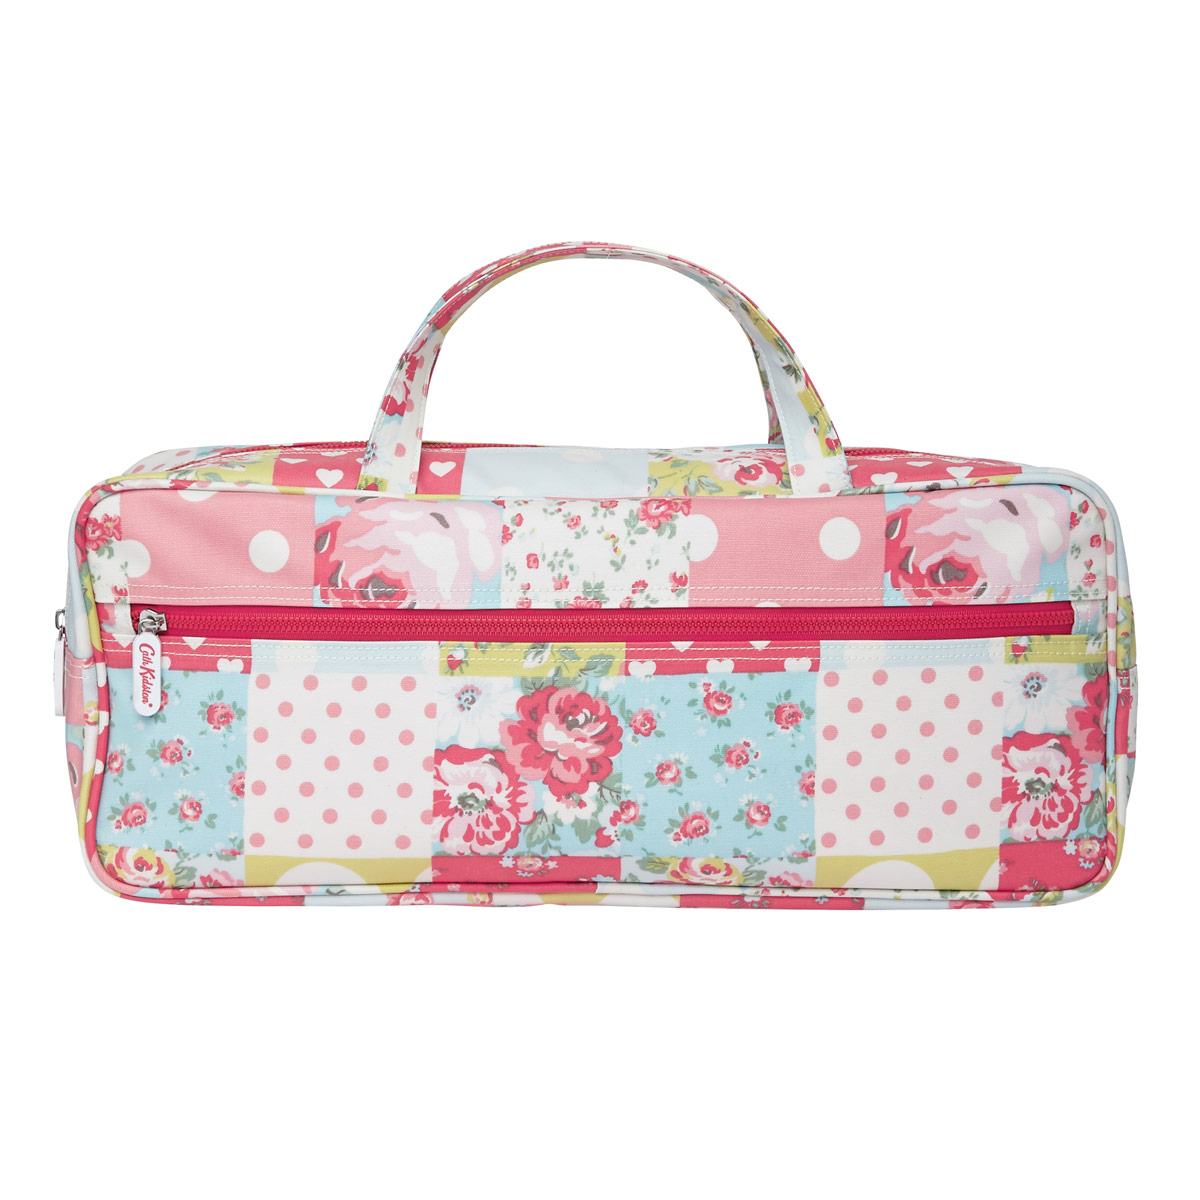 Knitting Bag : Cath Kidston Patchwork Knitting Needle Bag - Penny Royal Gifts